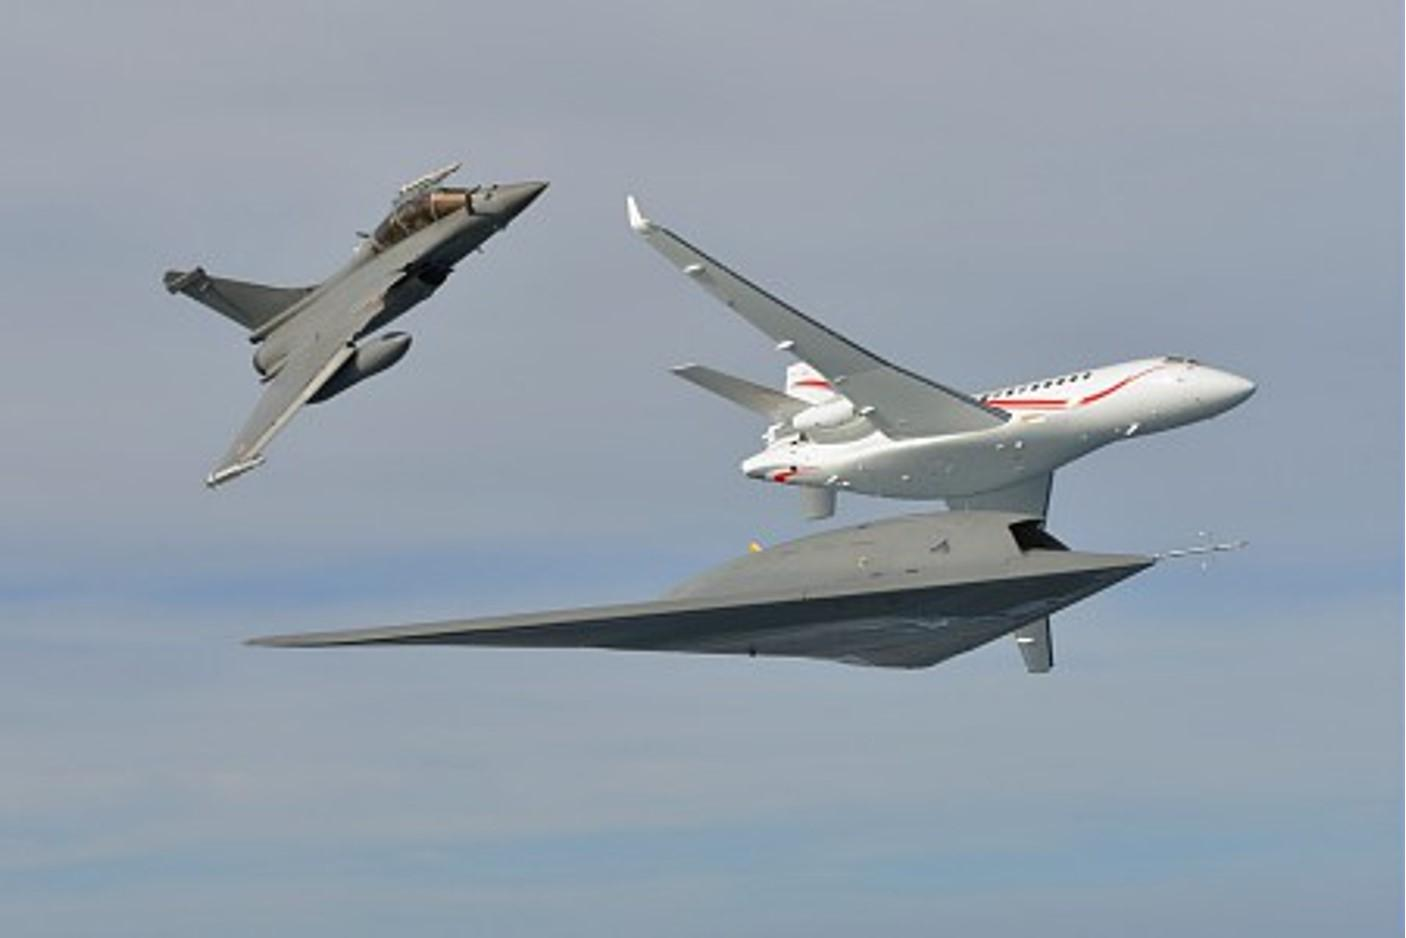 The formation flight lasted almost two hours